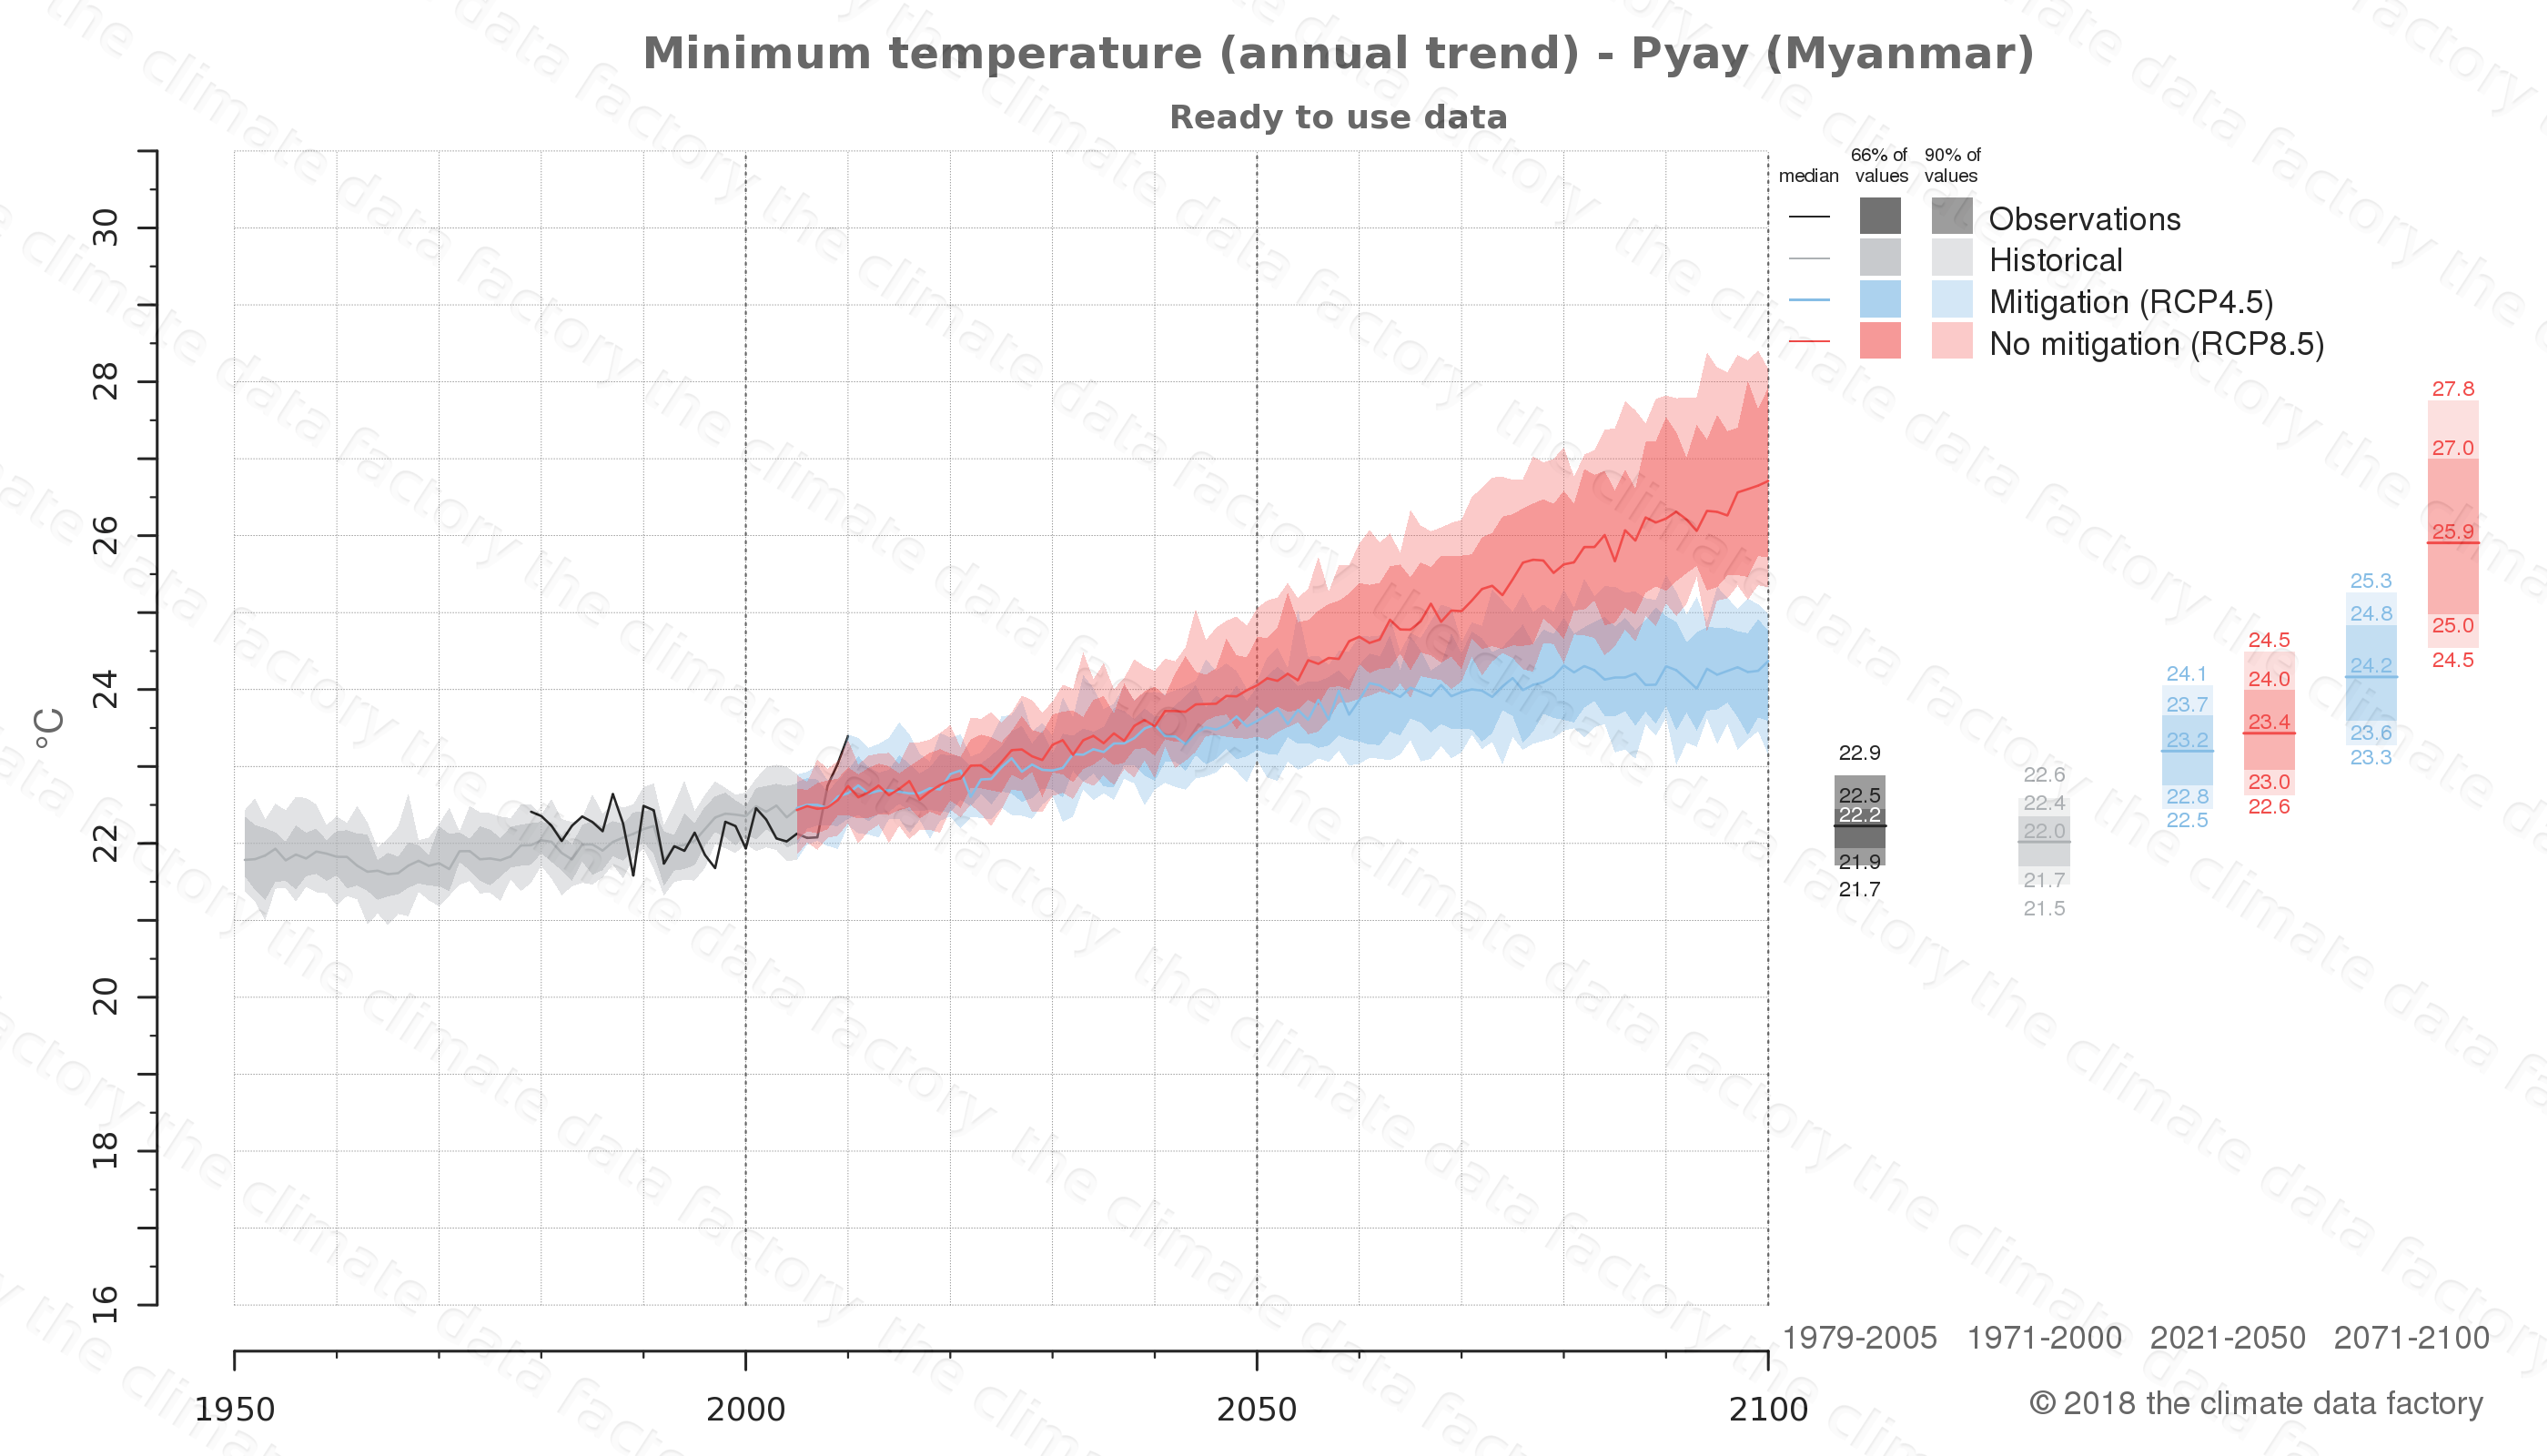 climate change data policy adaptation climate graph city data minimum-temperature pyay myanmar